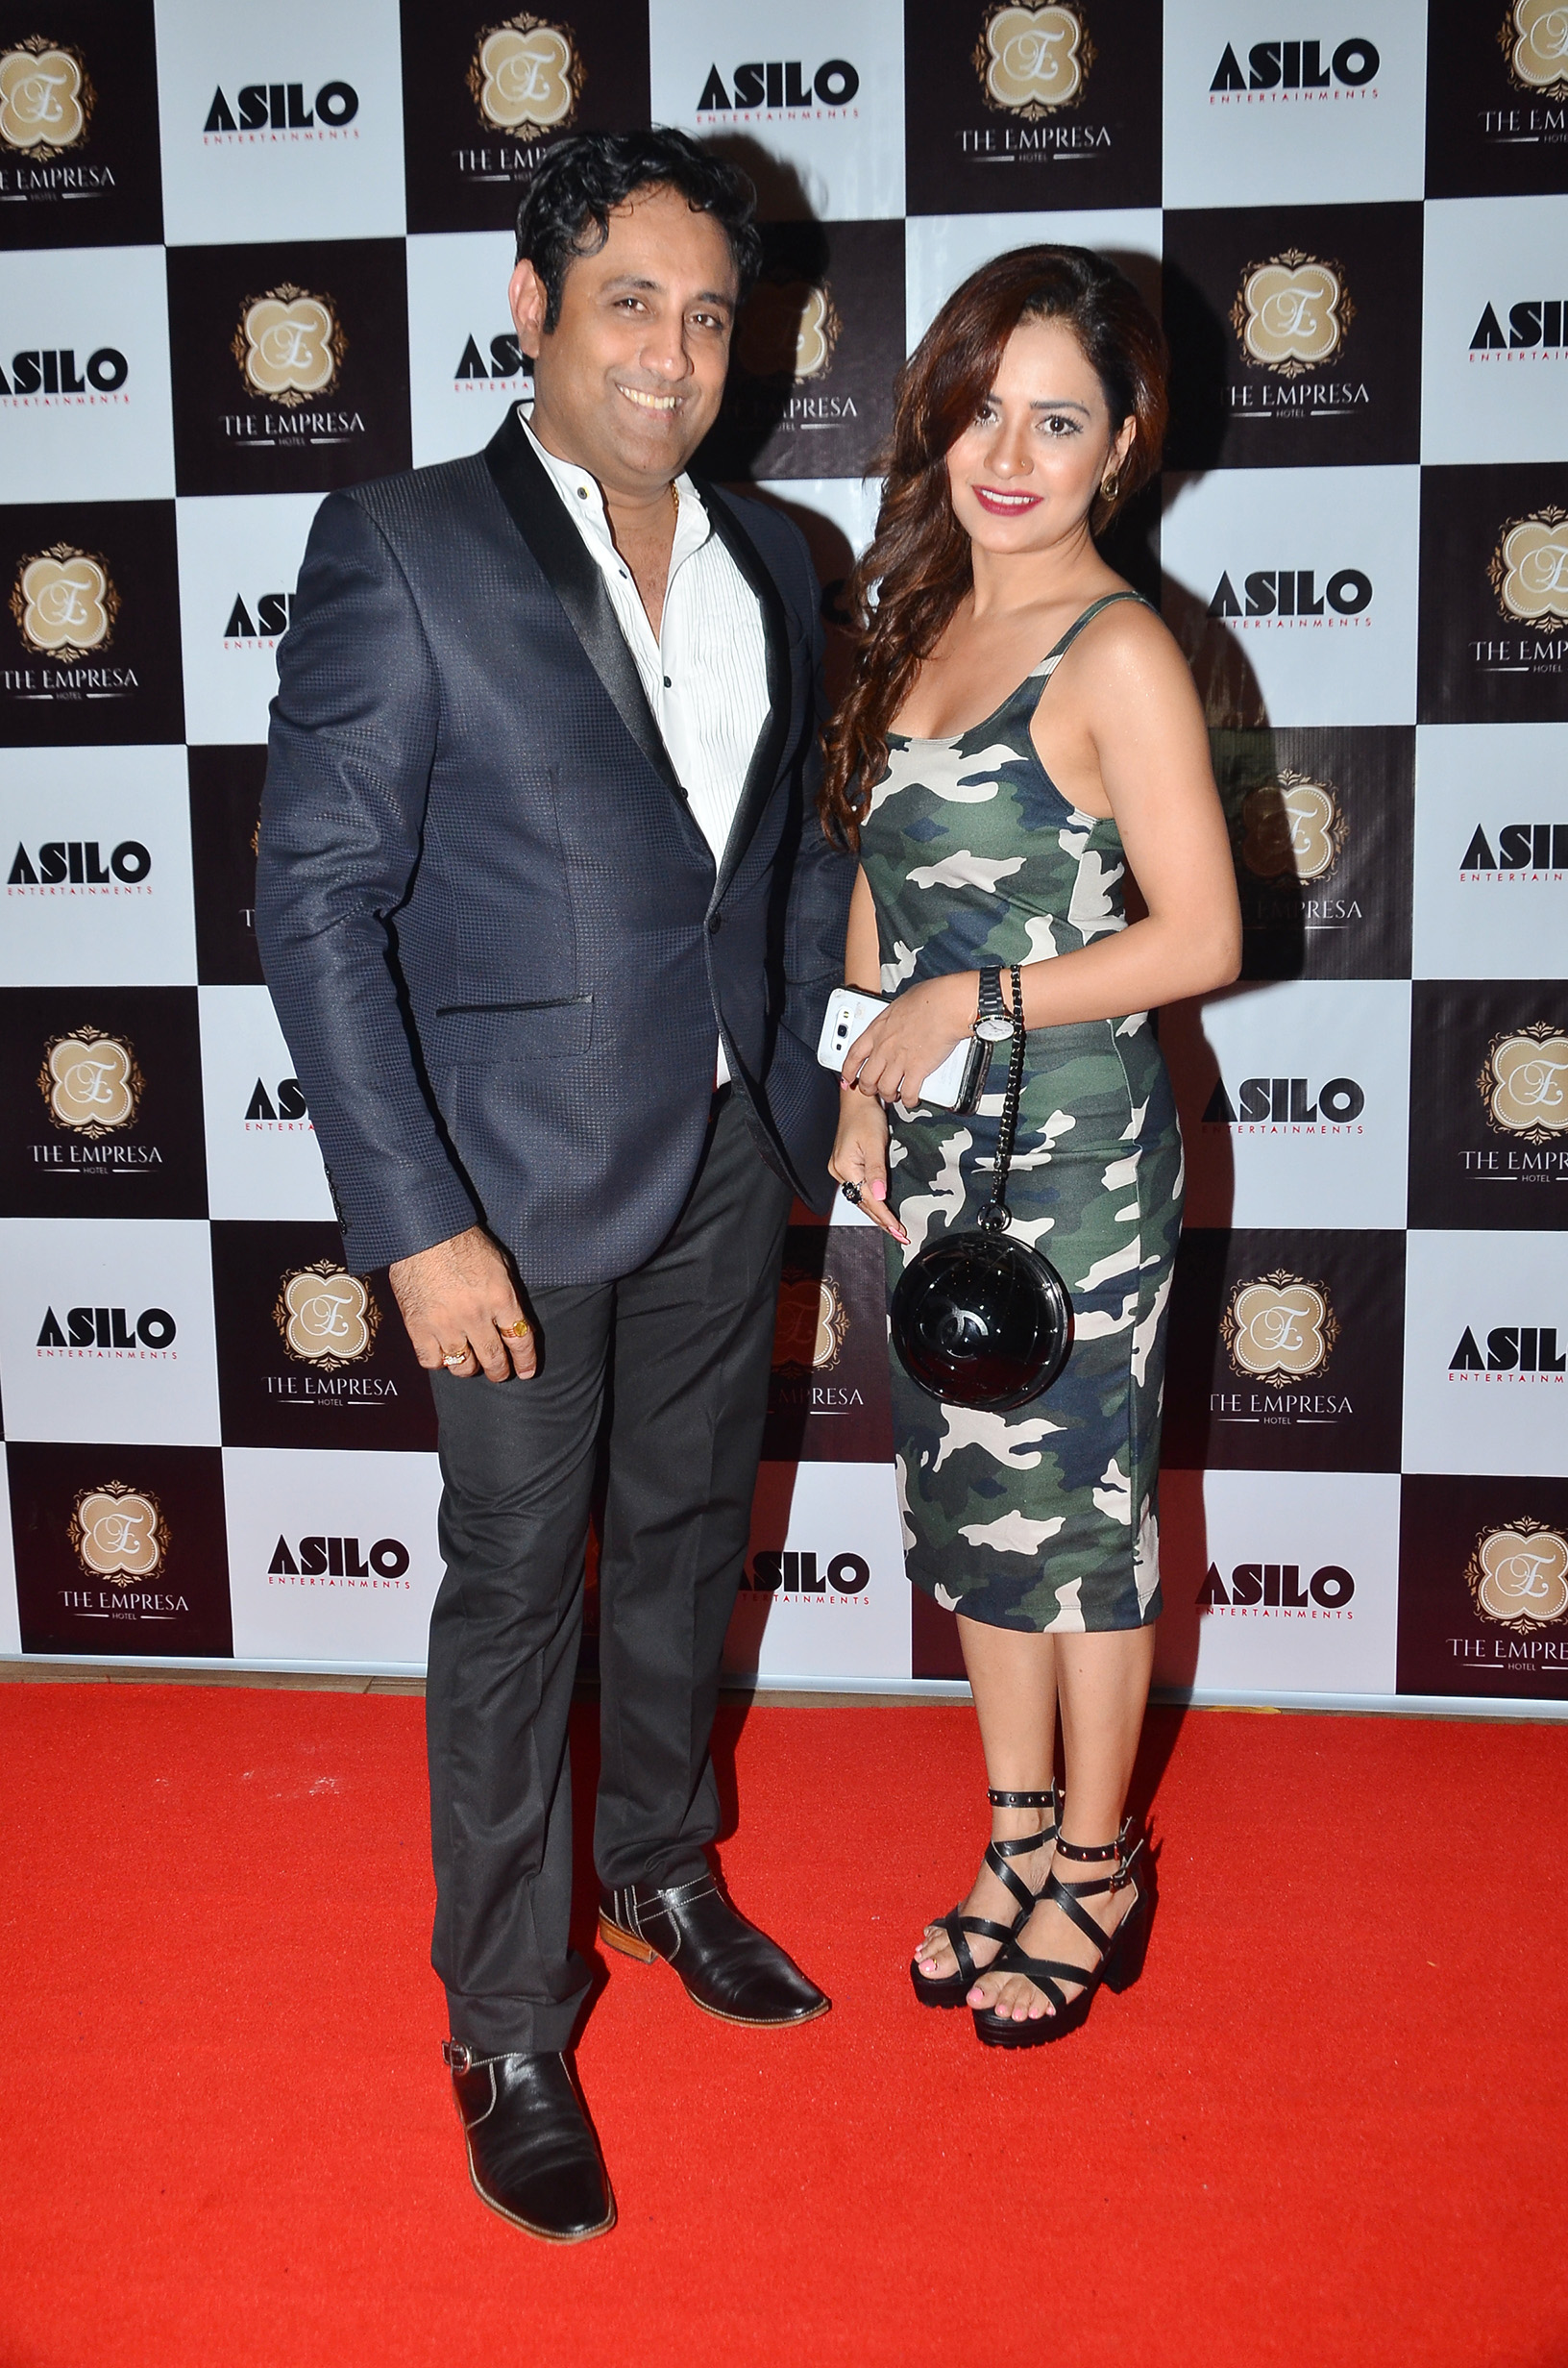 Kalpesh Mehta's star-studded ASILO launch